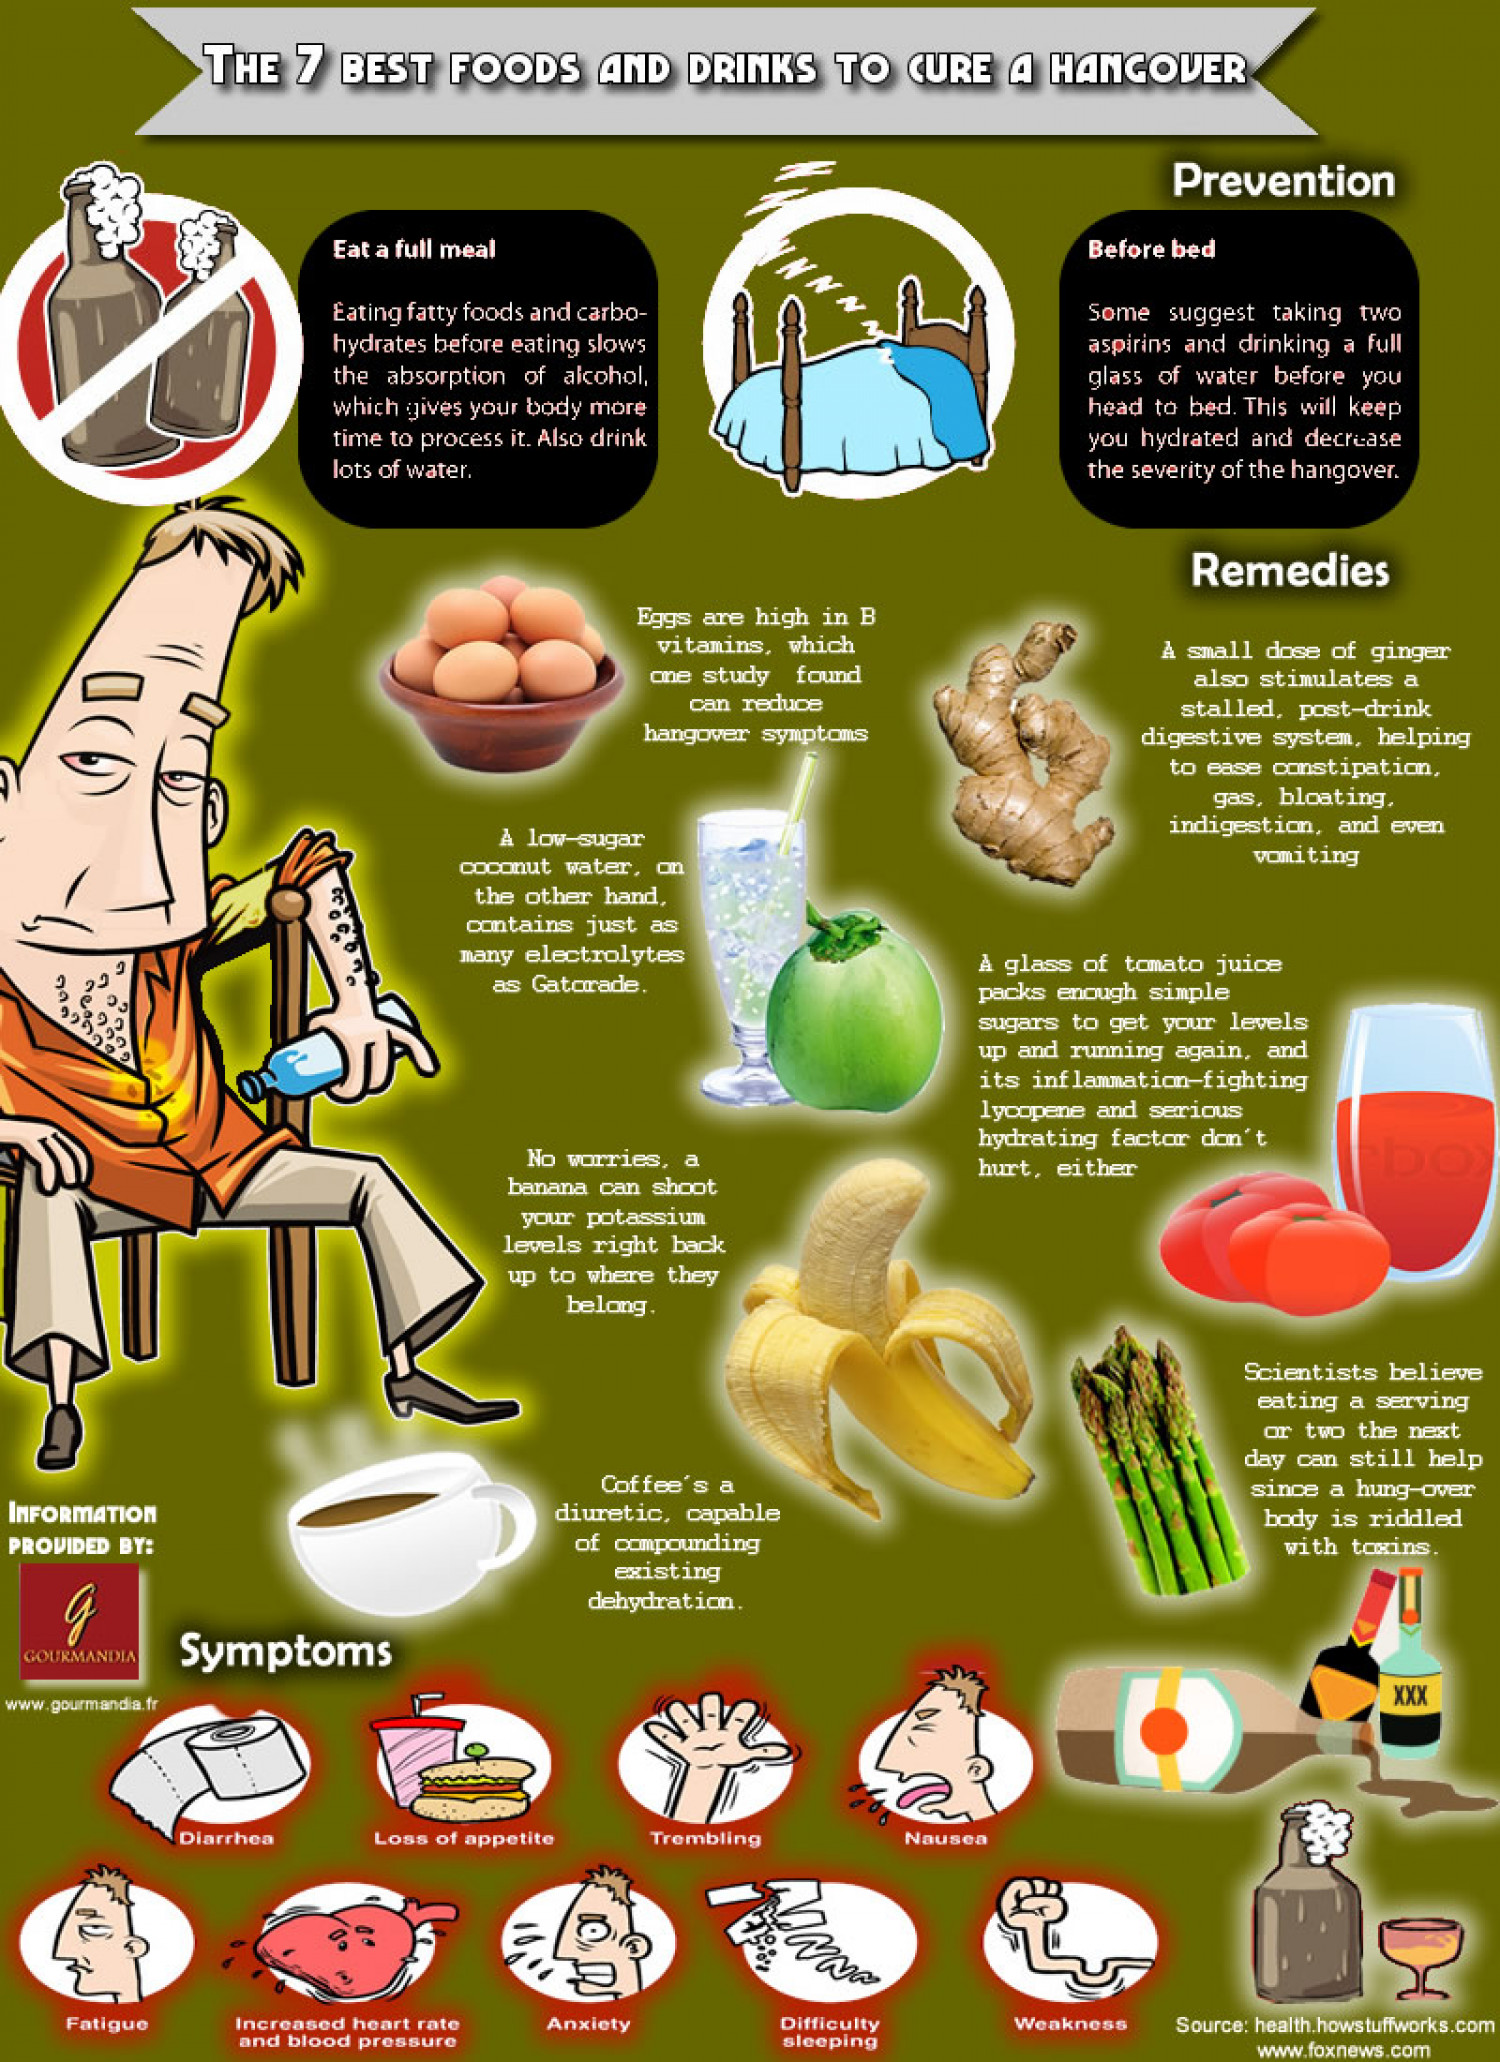 Food and Drinks to Cure Hangover Infographic